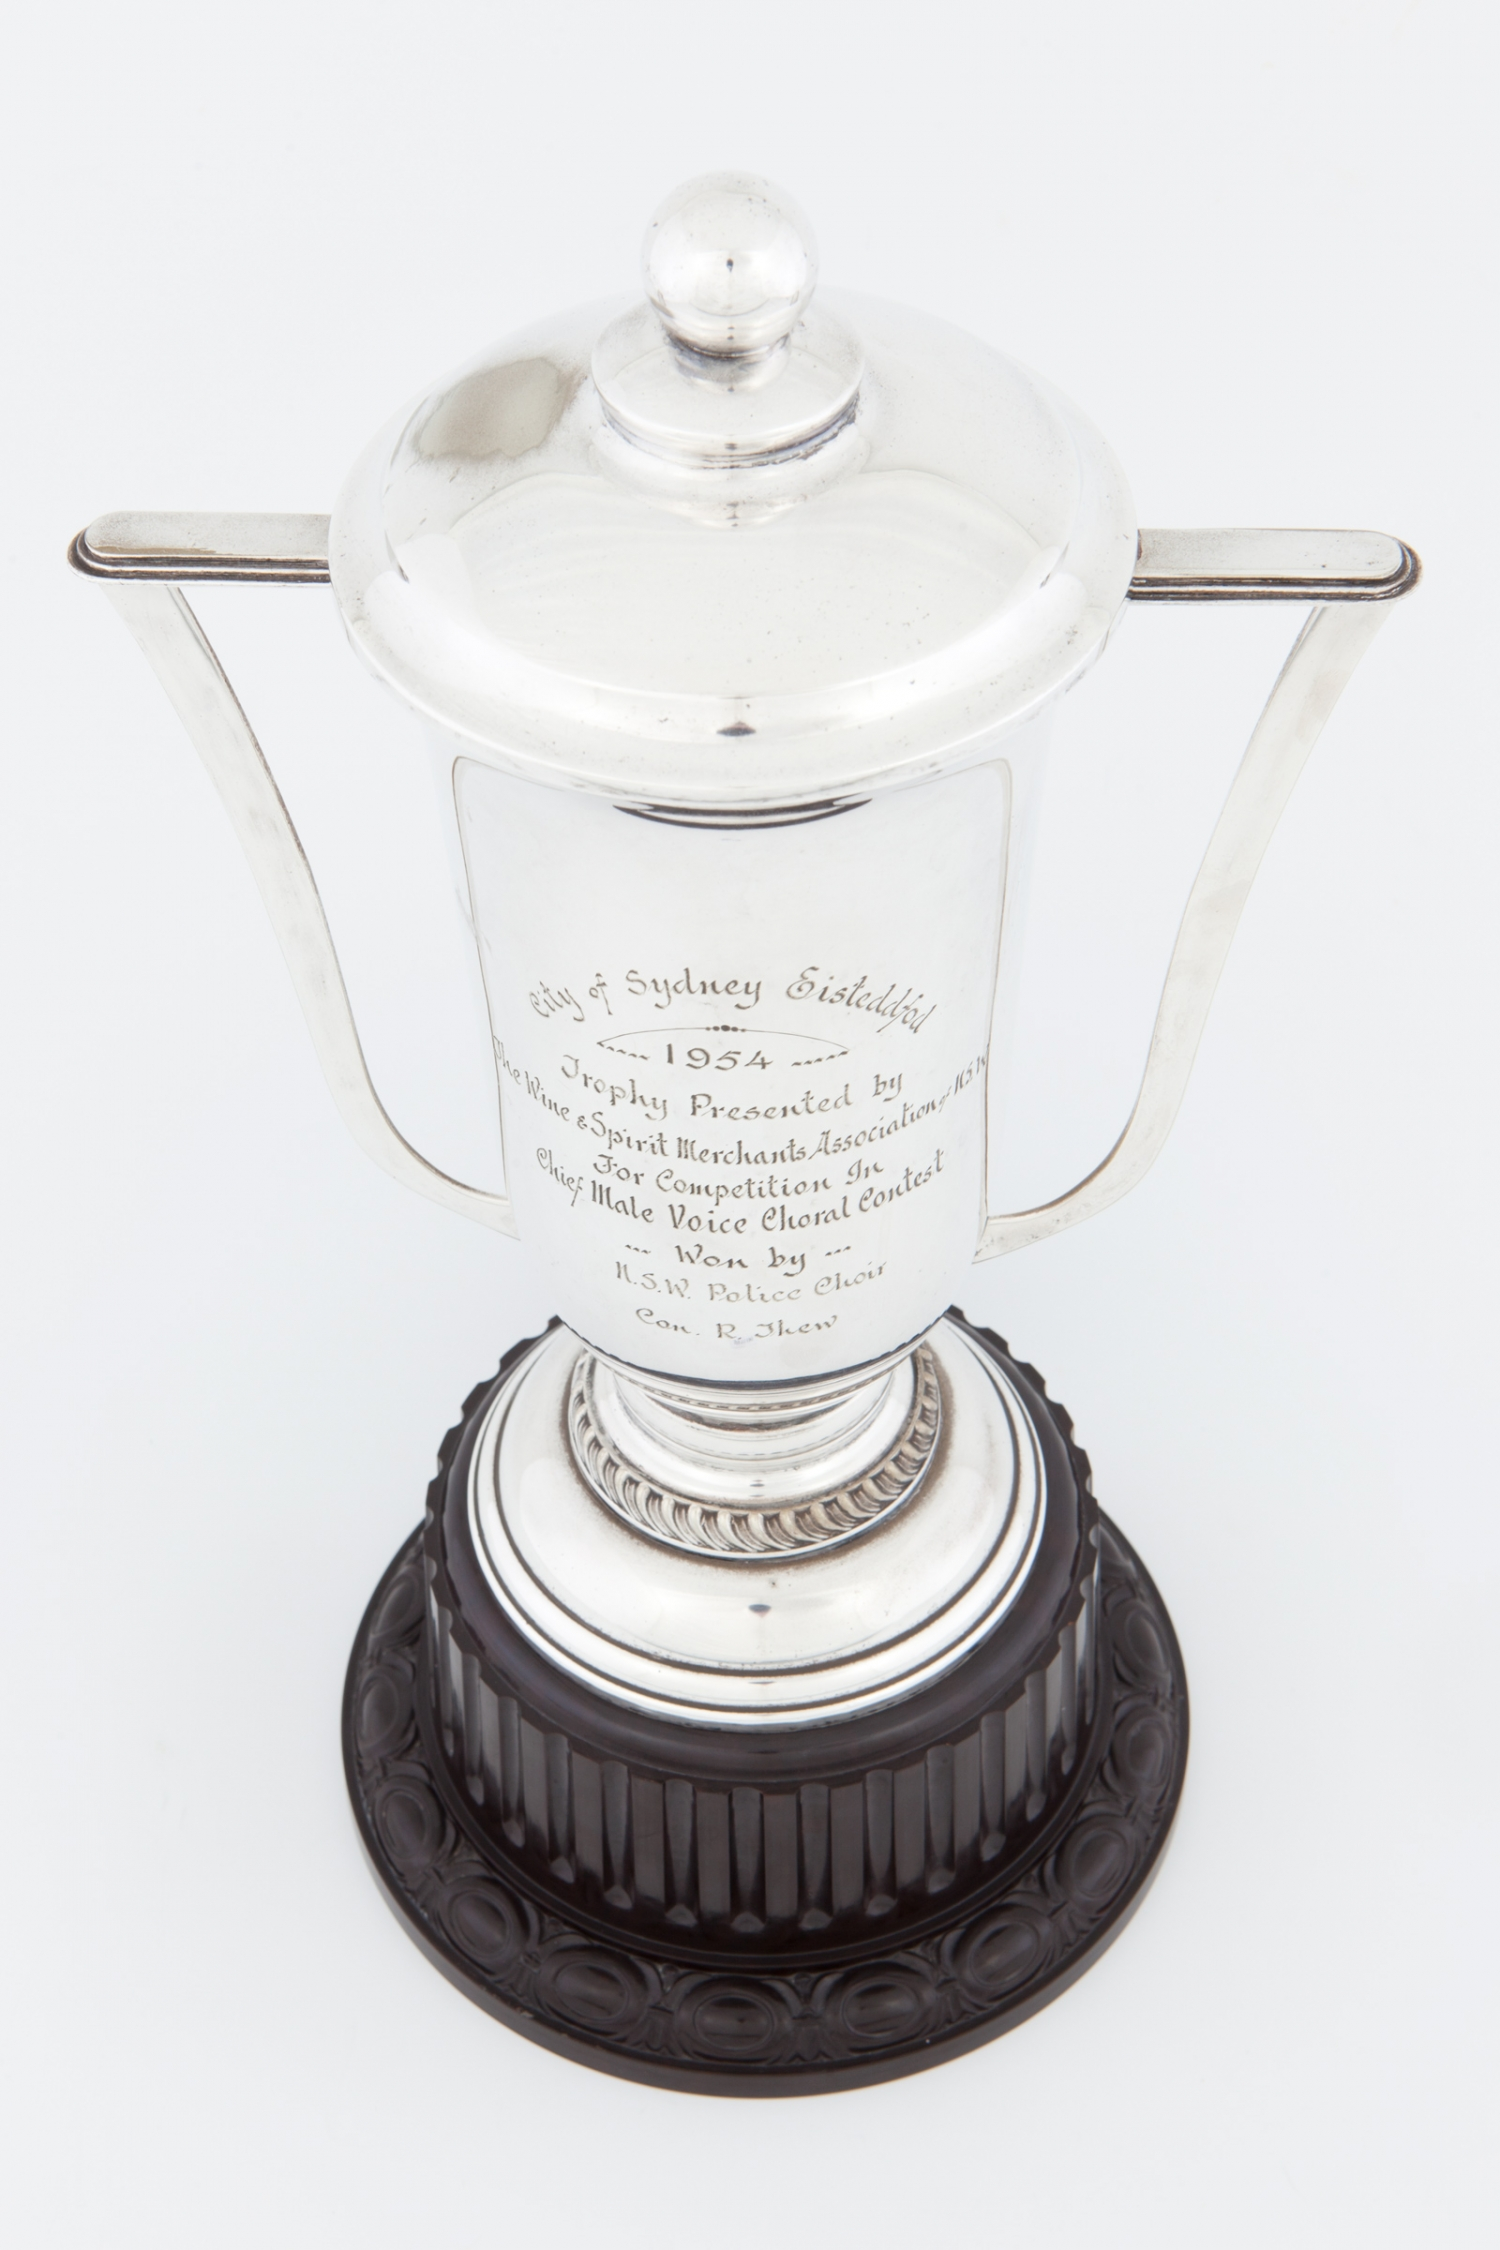 Trophy awarded to the NSW Police Choir at the City of Sydney Eisteddfod, 1954